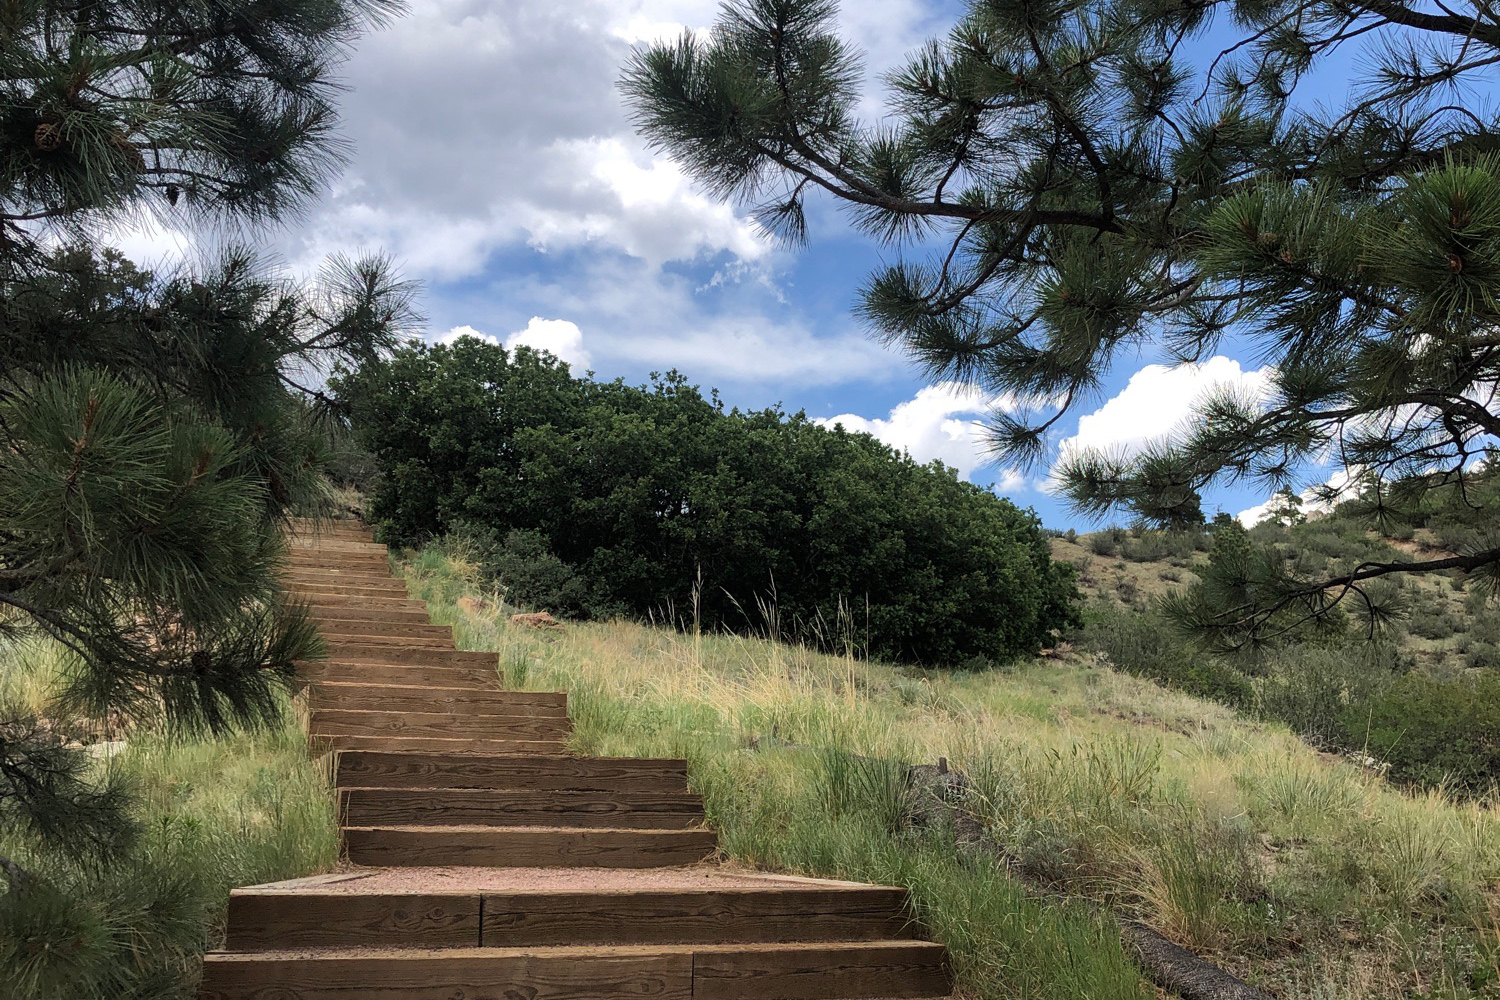 The Tava Trail starts with some steps on the west side of UCCS.